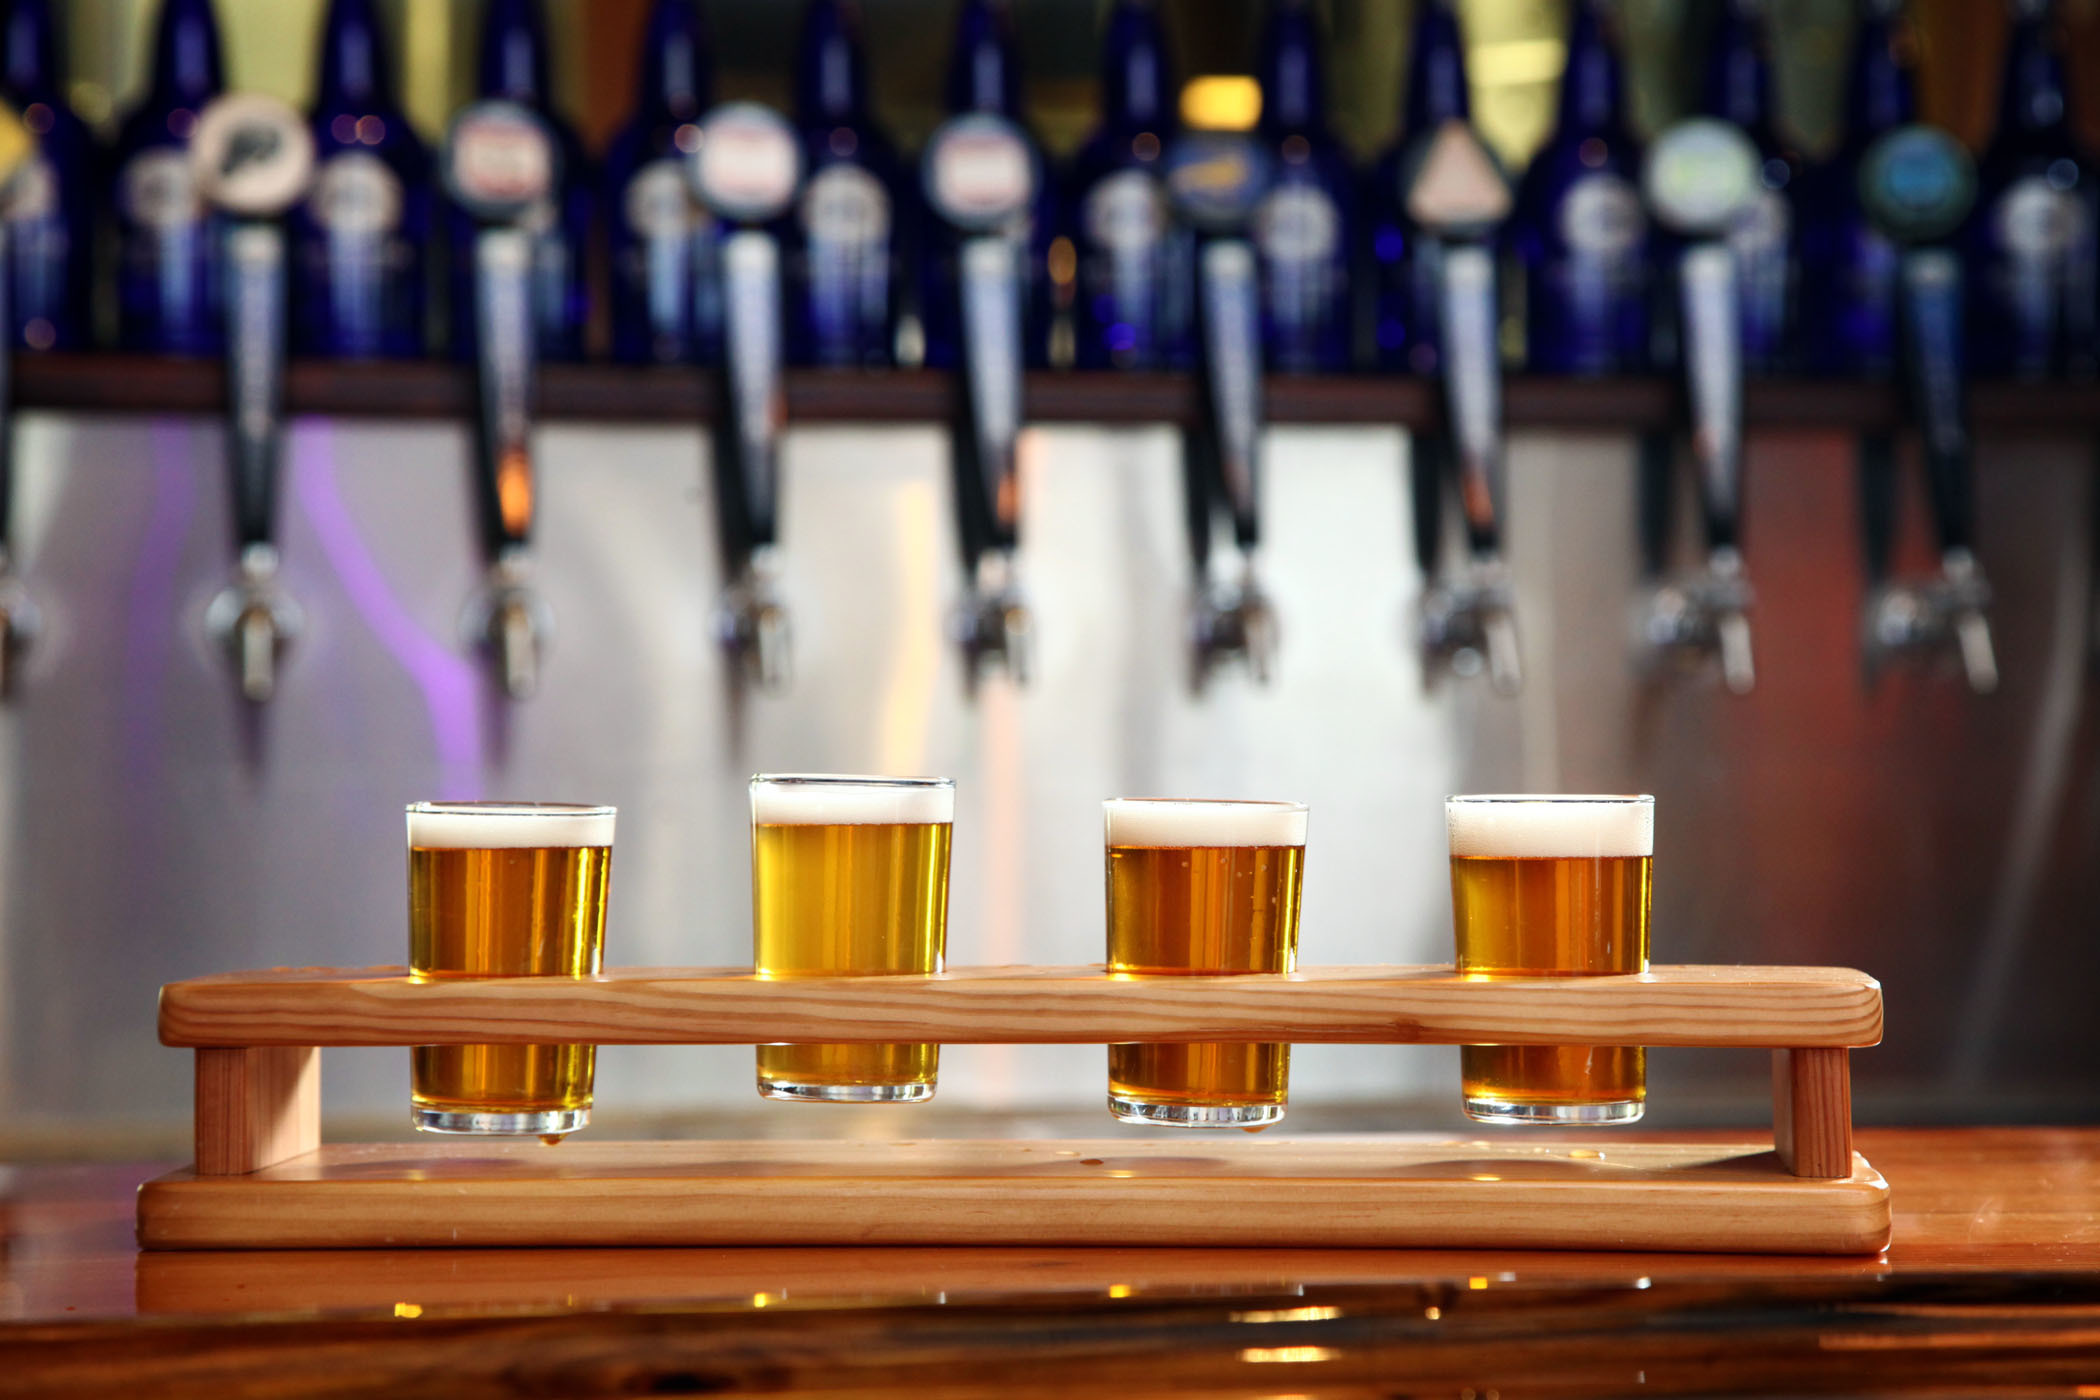 July 29, 2014 - Florida, U.S. - (Left to right) Southend Session, Screamin Reels IPA, Bone-A-Fied Blonde, and Spinytail Pale Ale at the SaltWater Brewery in Delray Beach on July 29, 2014 |